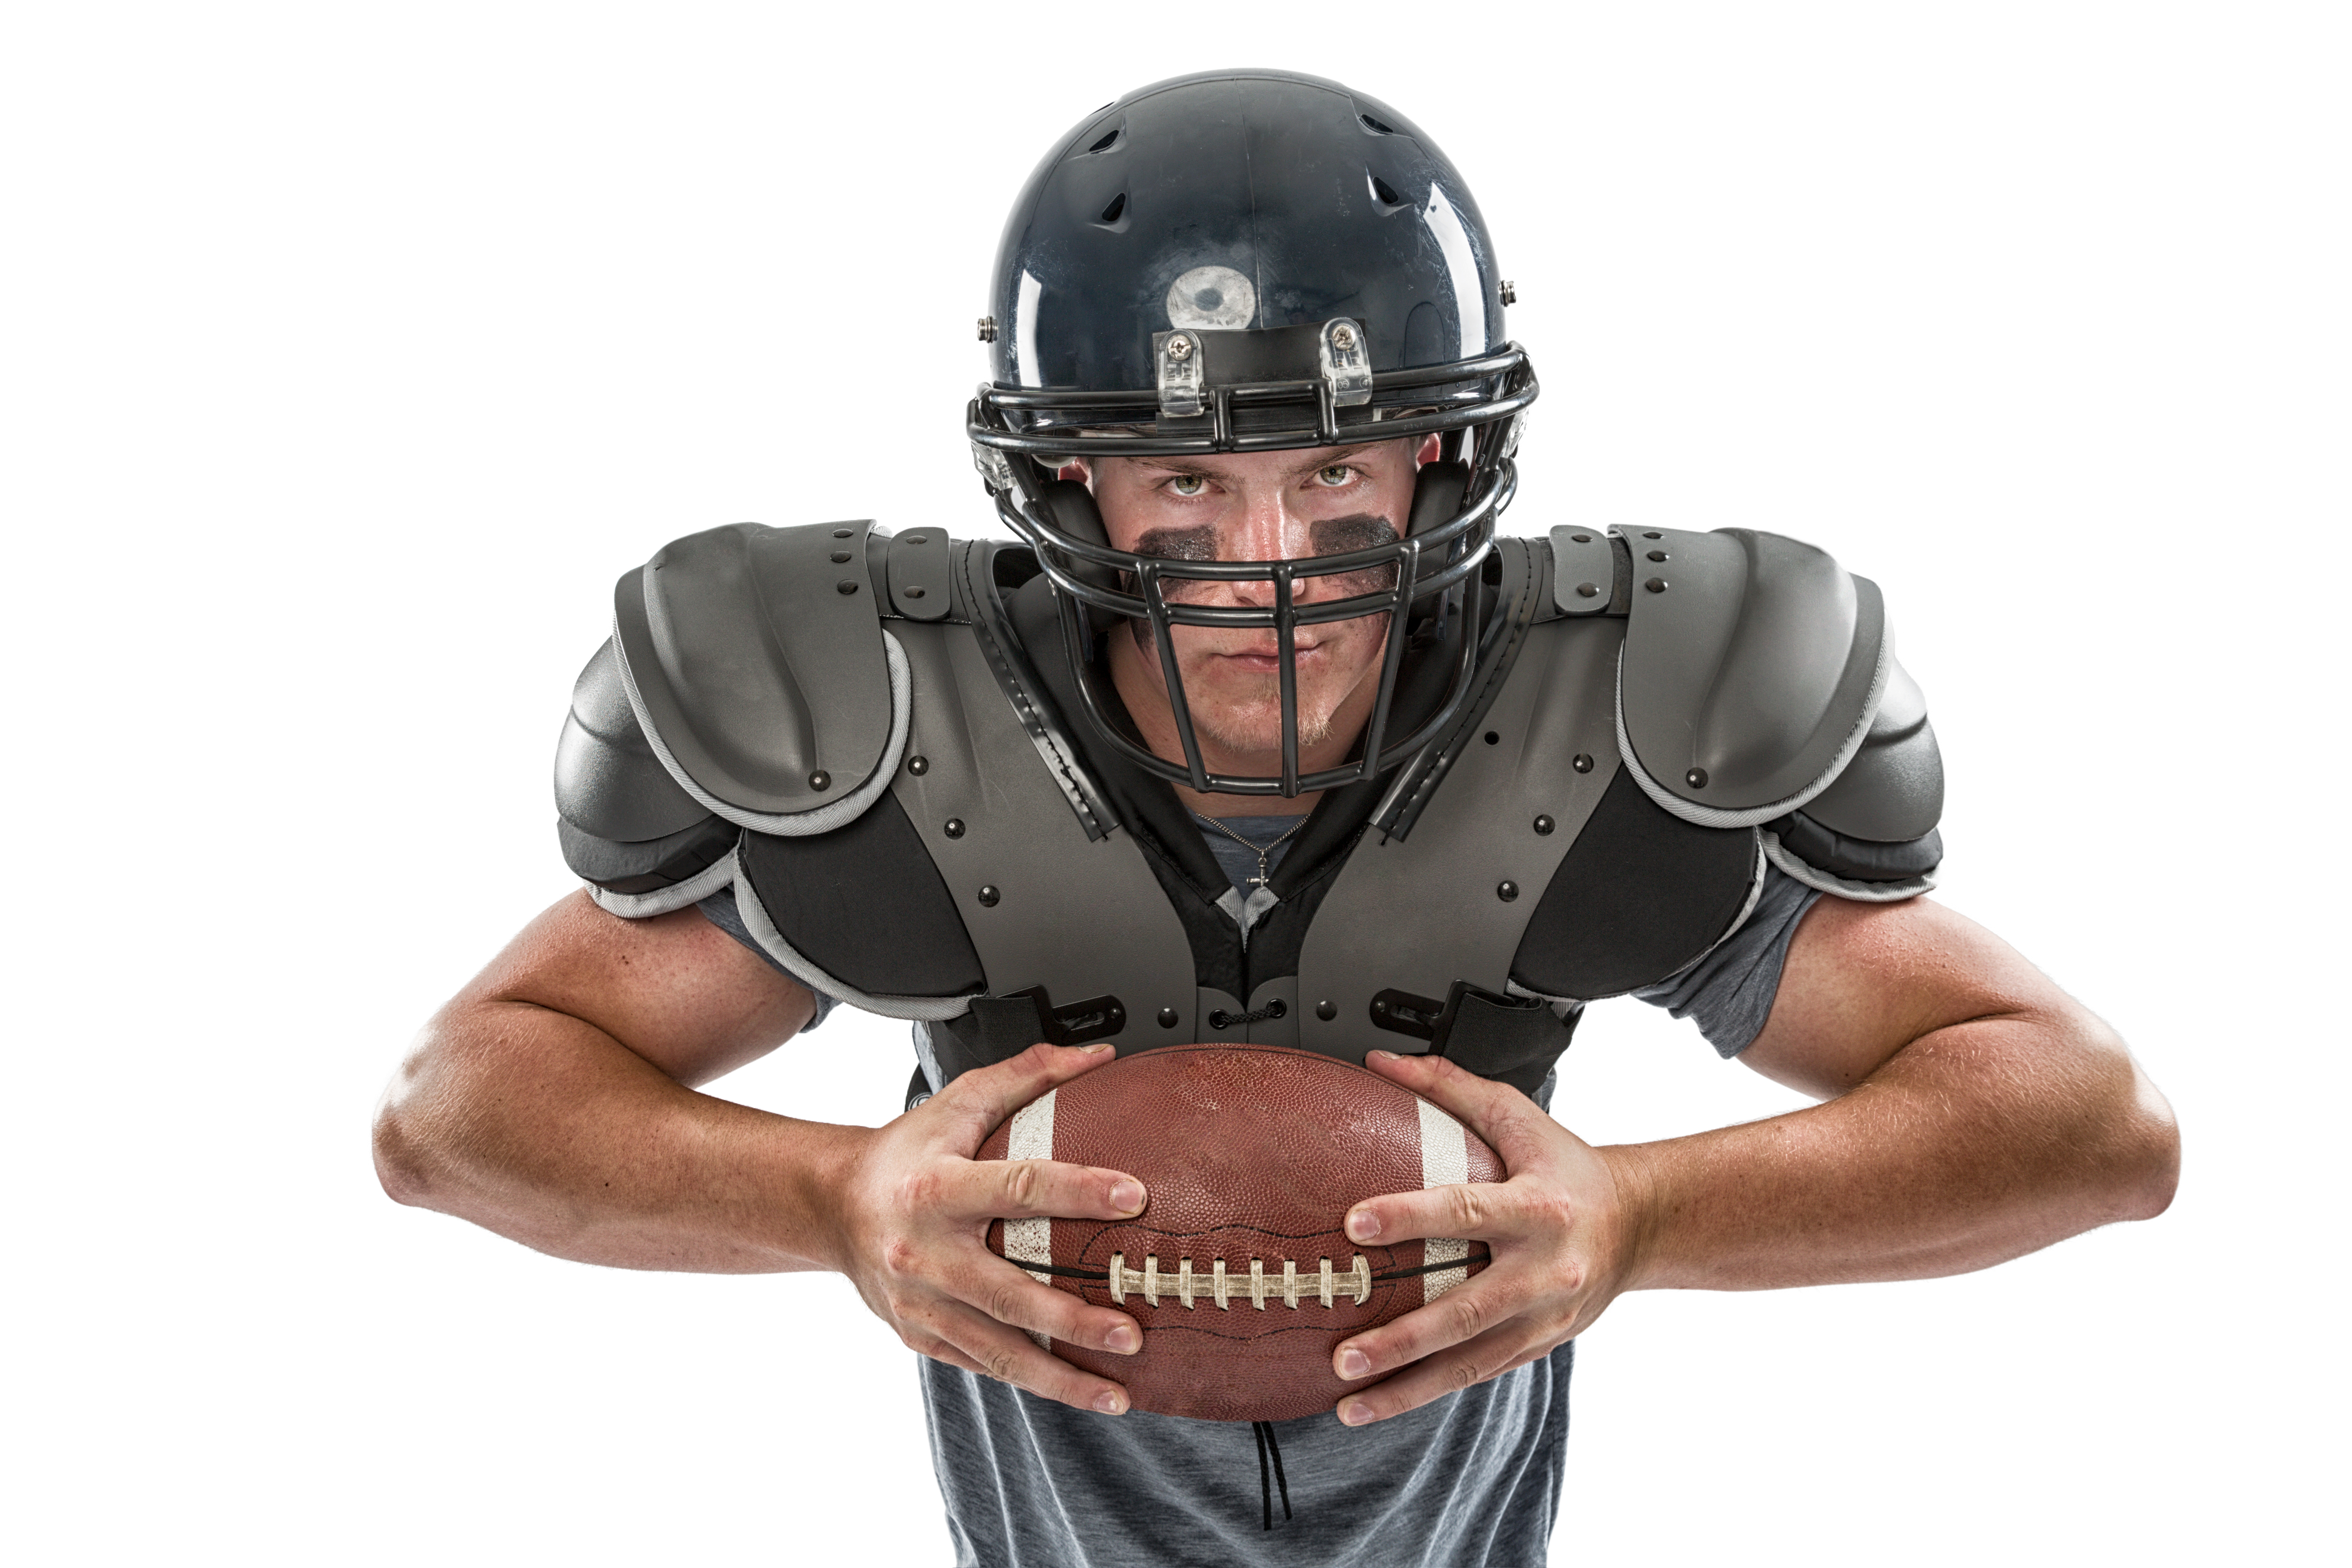 Football player in pads, helmet, football_iStock-155381947